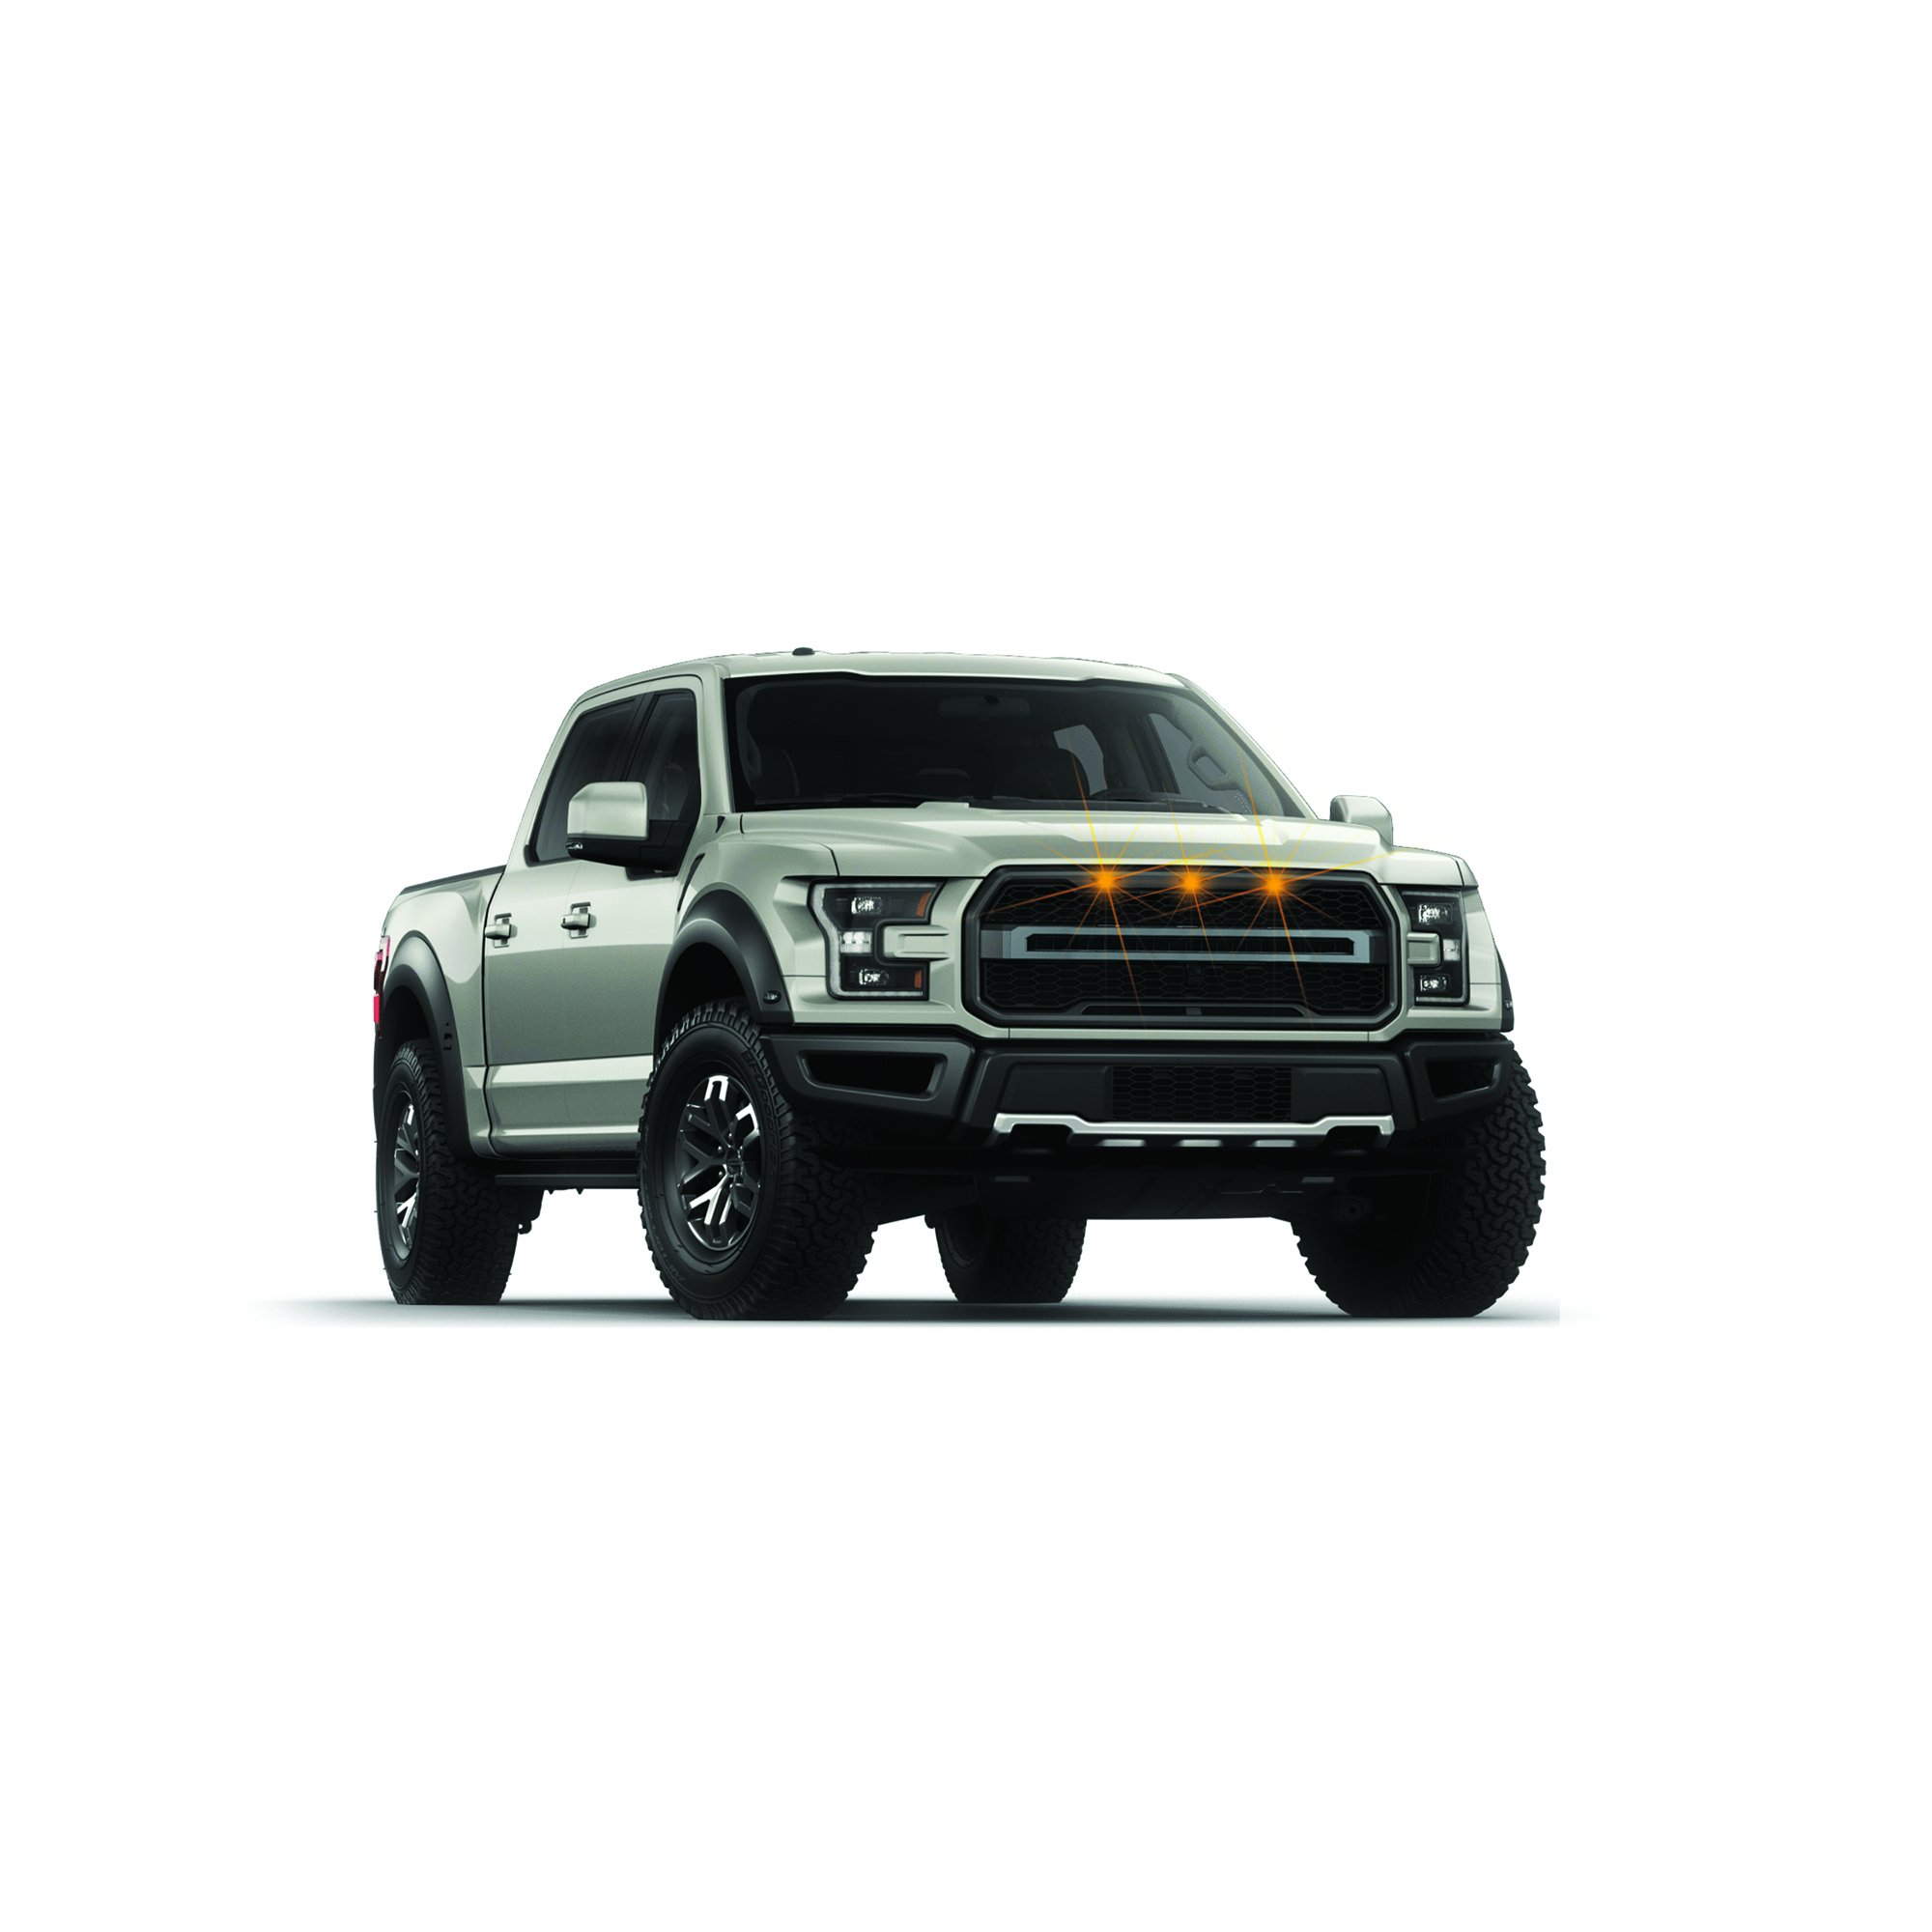 Alpena 77162 PositionPodz LED Marker Light for Rooftop and Grille by Alpena (Image #3)